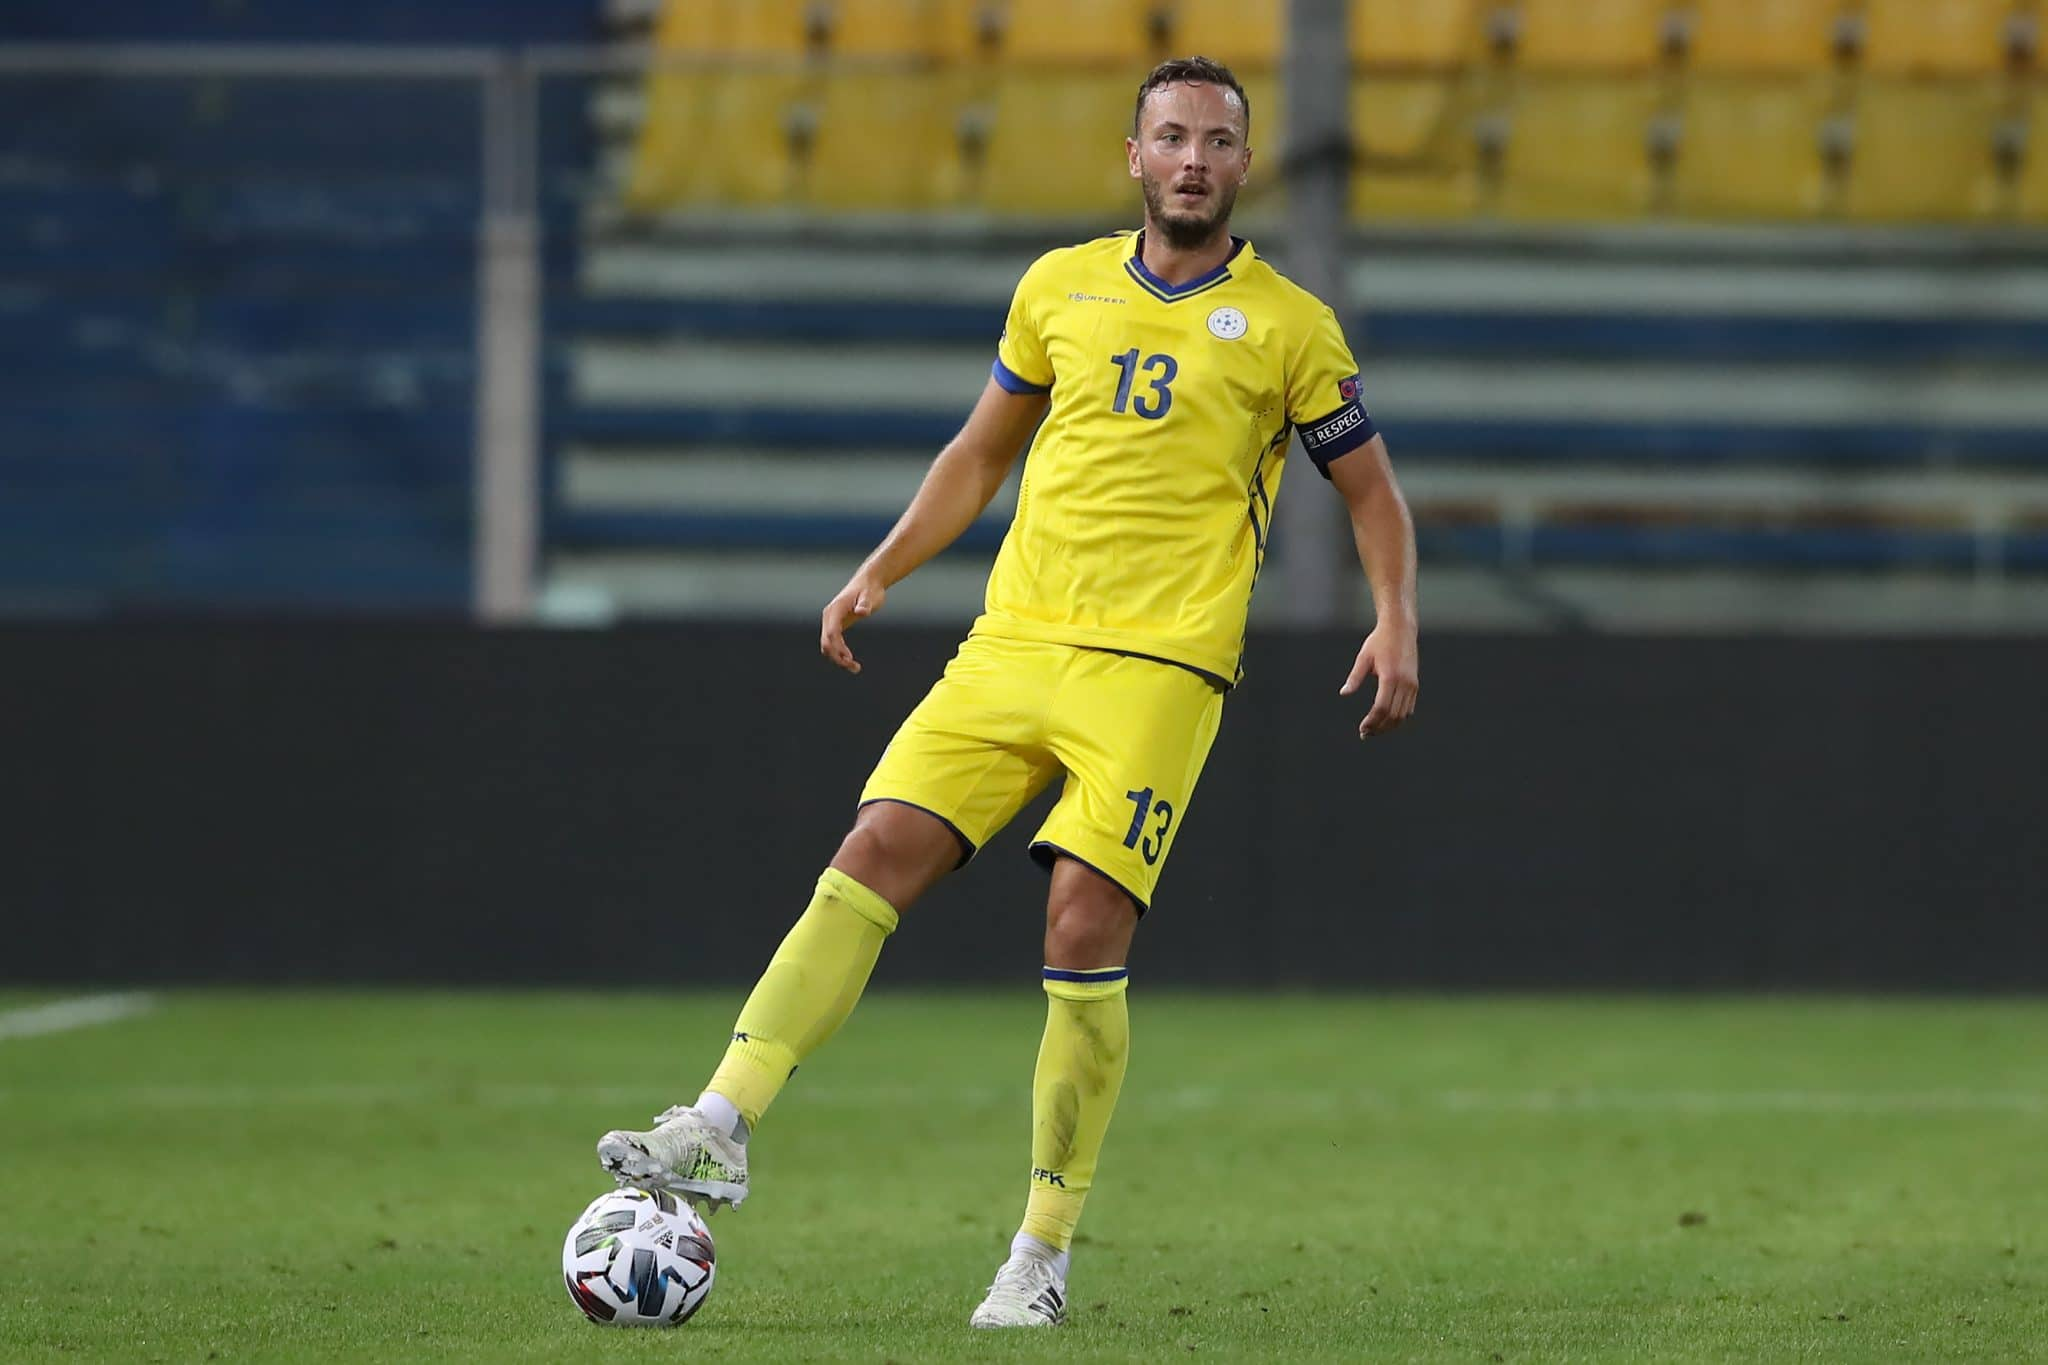 PARMA, ITALY - SEPTEMBER 03: Amir Rrahmani of Kosovo during the UEFA Nations League group stage match between Moldova and Kosovo at Ennio Tardini Stadium on September 03, 2020 in Parma, Italy. (Photo by Jonathan Moscrop/Getty Images)